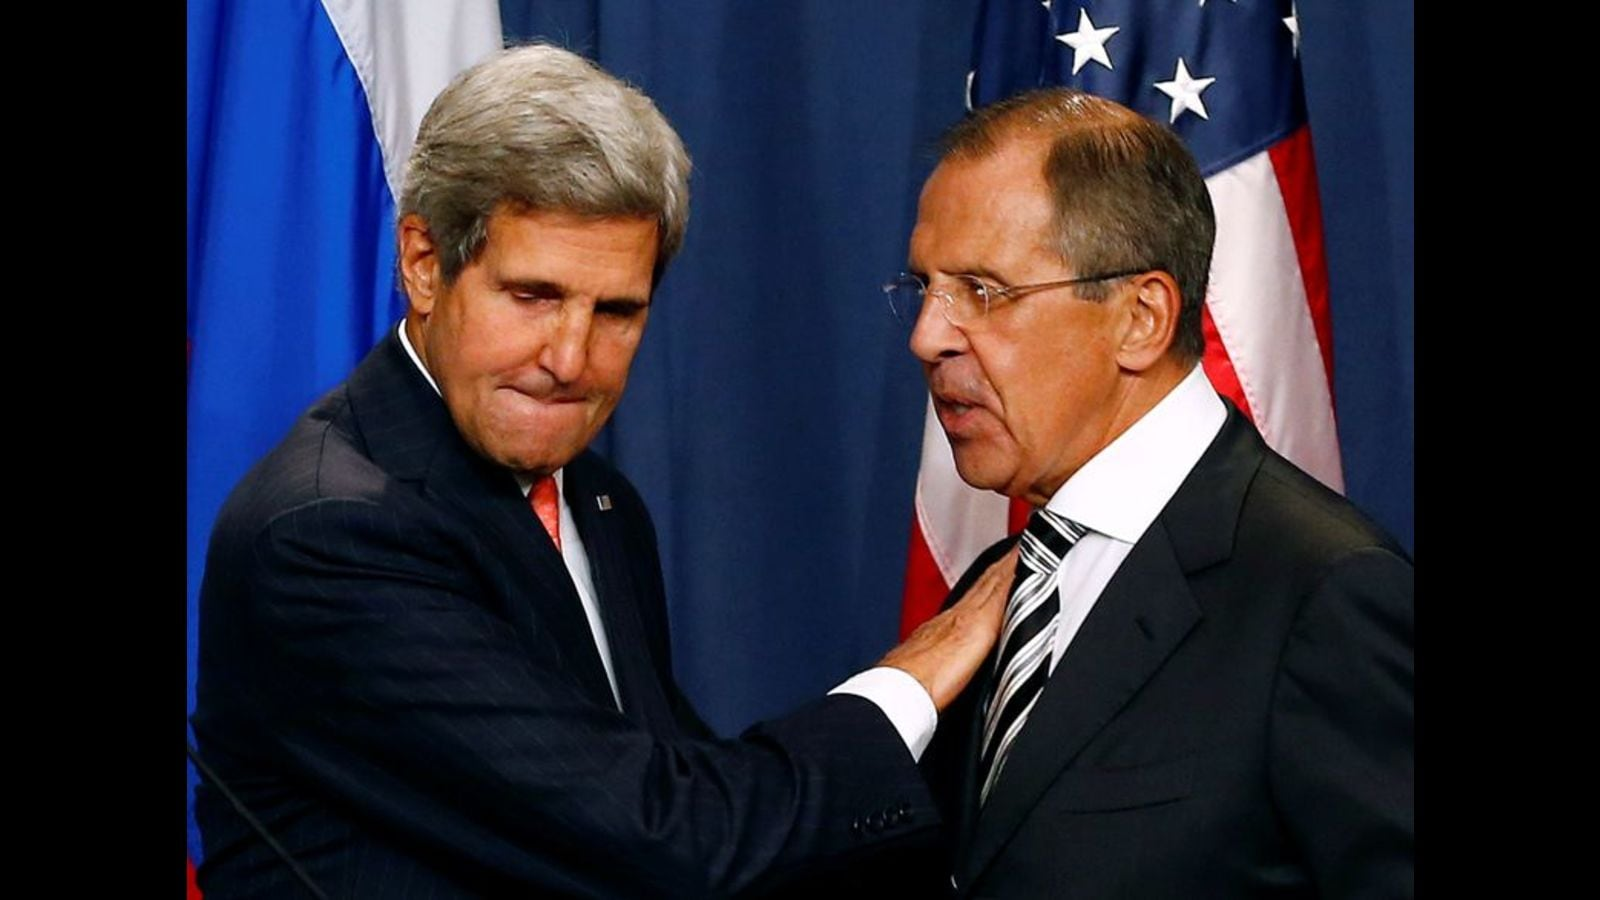 Sergey Lavrov, John Kerry meet in India, discuss climate-related matters - Hindustan Times